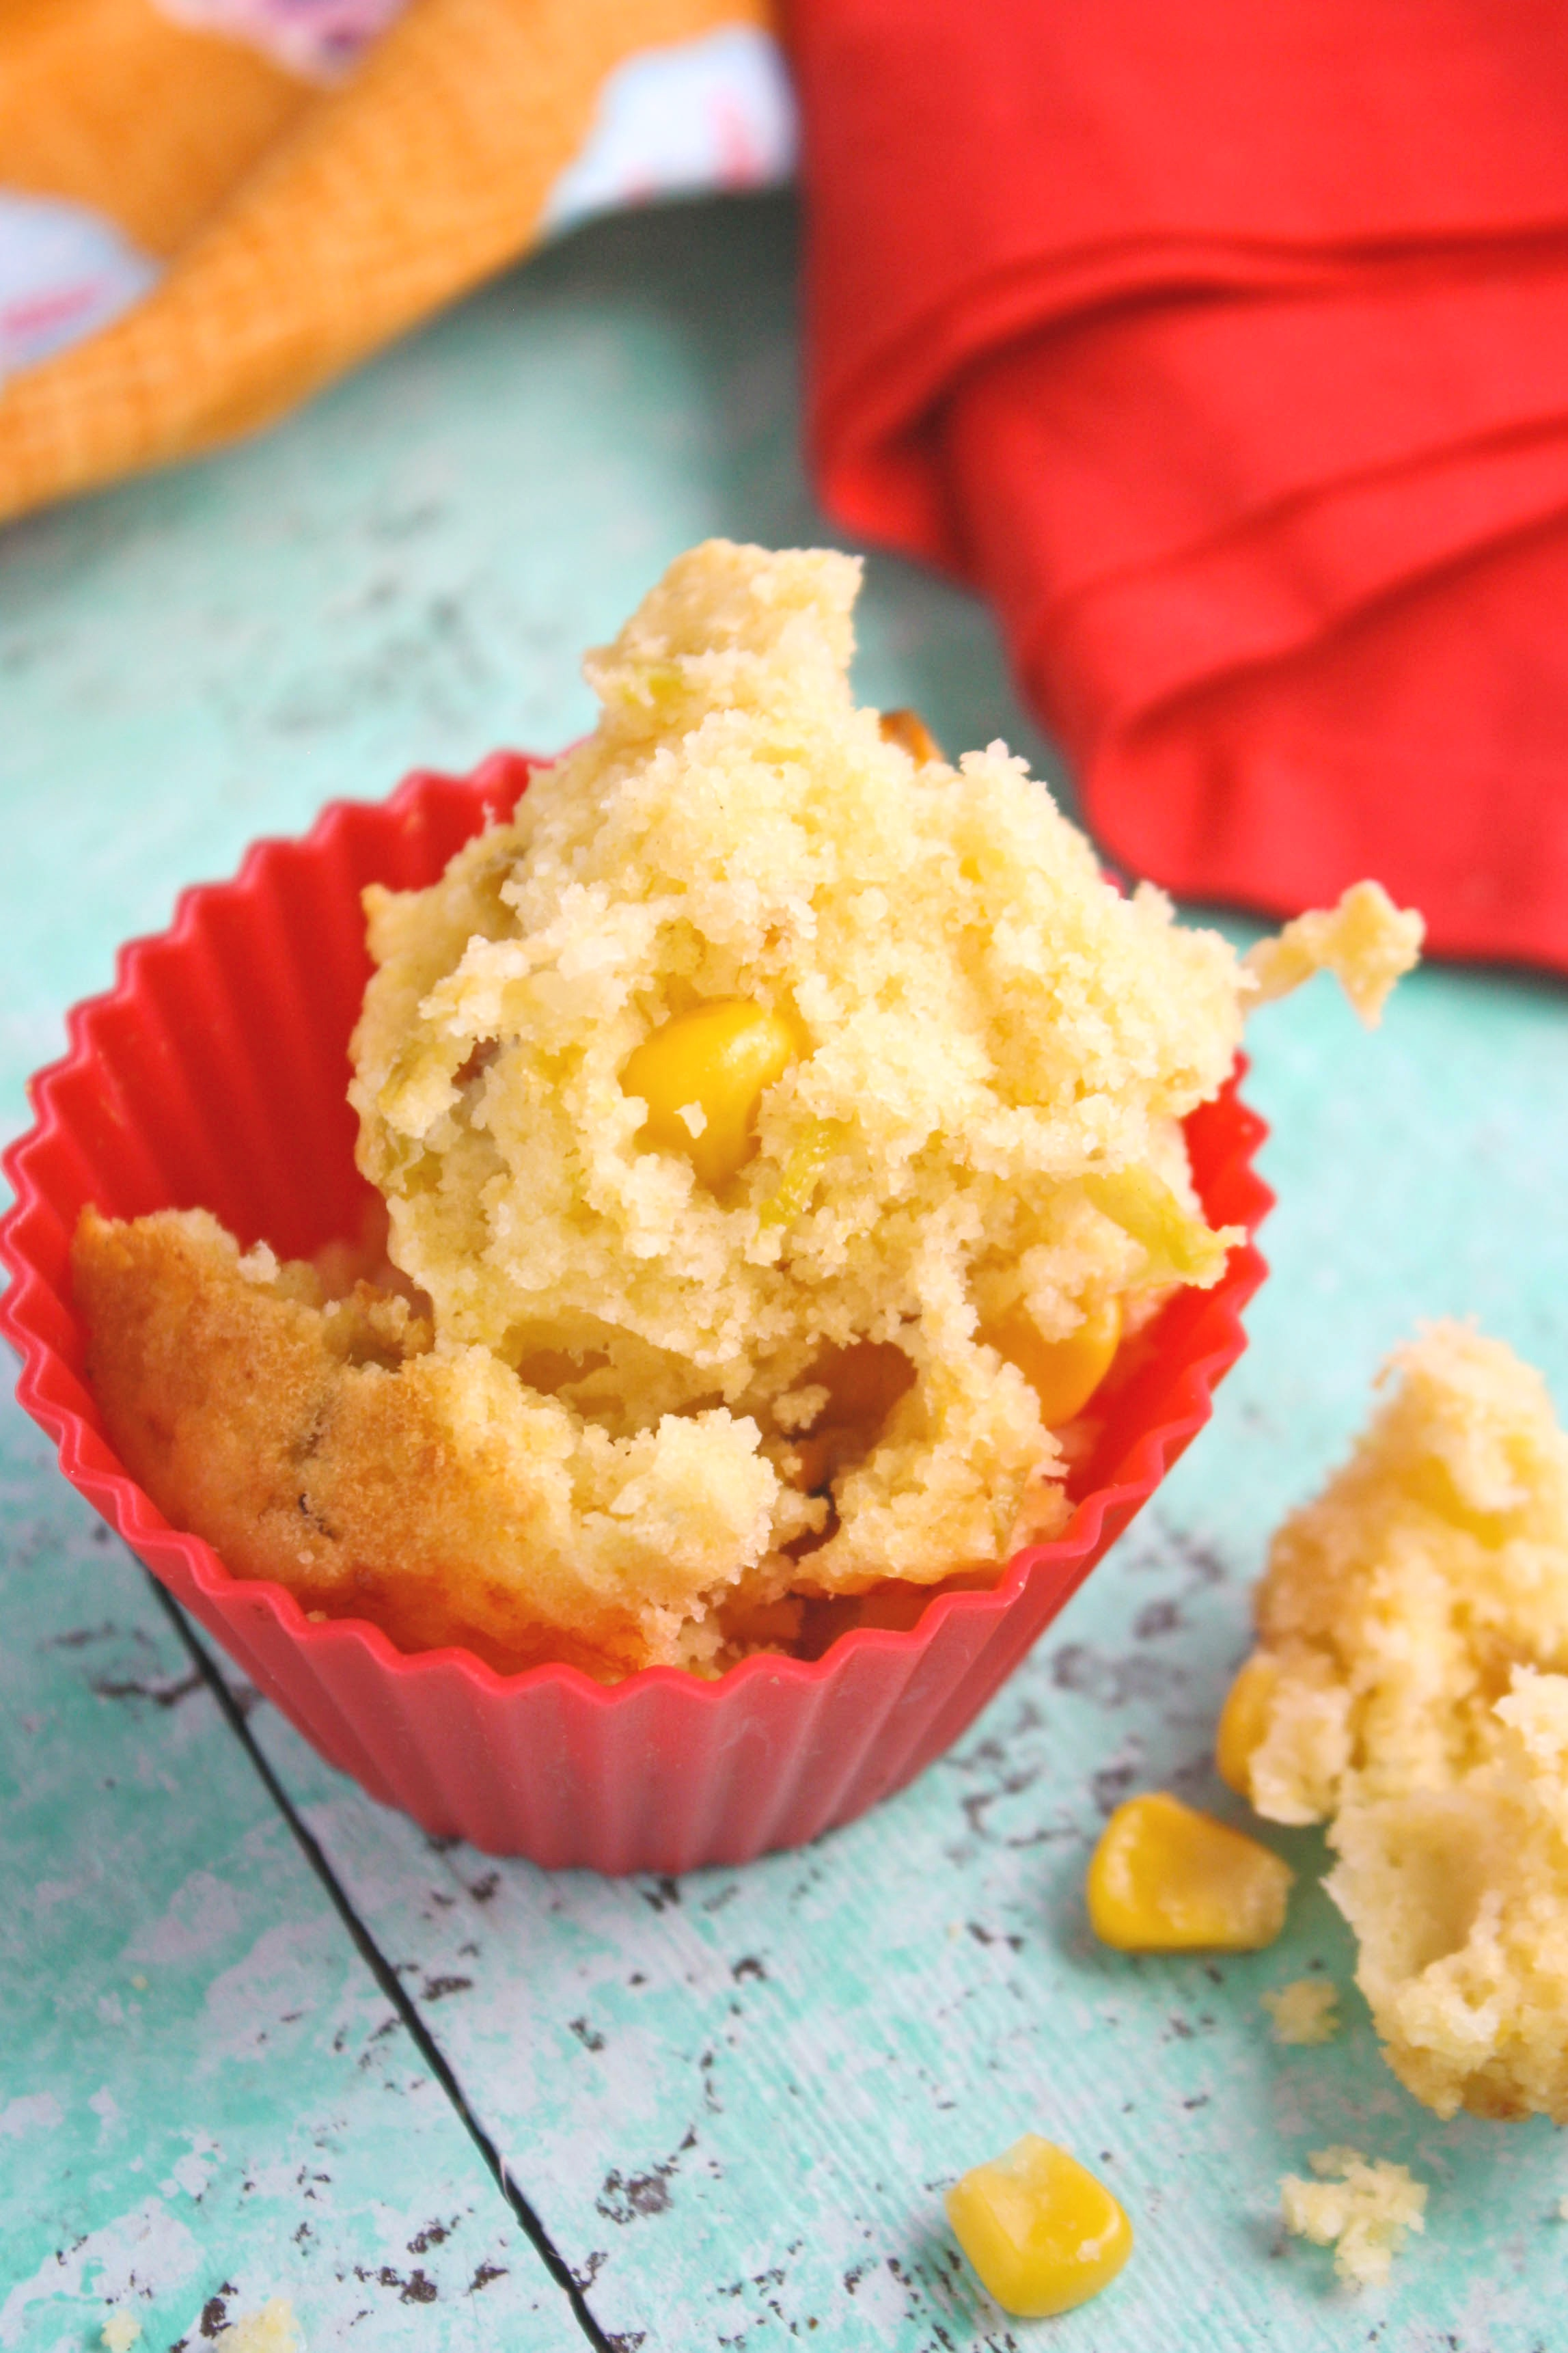 Roasted Green Chile Cornbread Muffins are a tasty treat to serve any time. You'll love the big flavors!